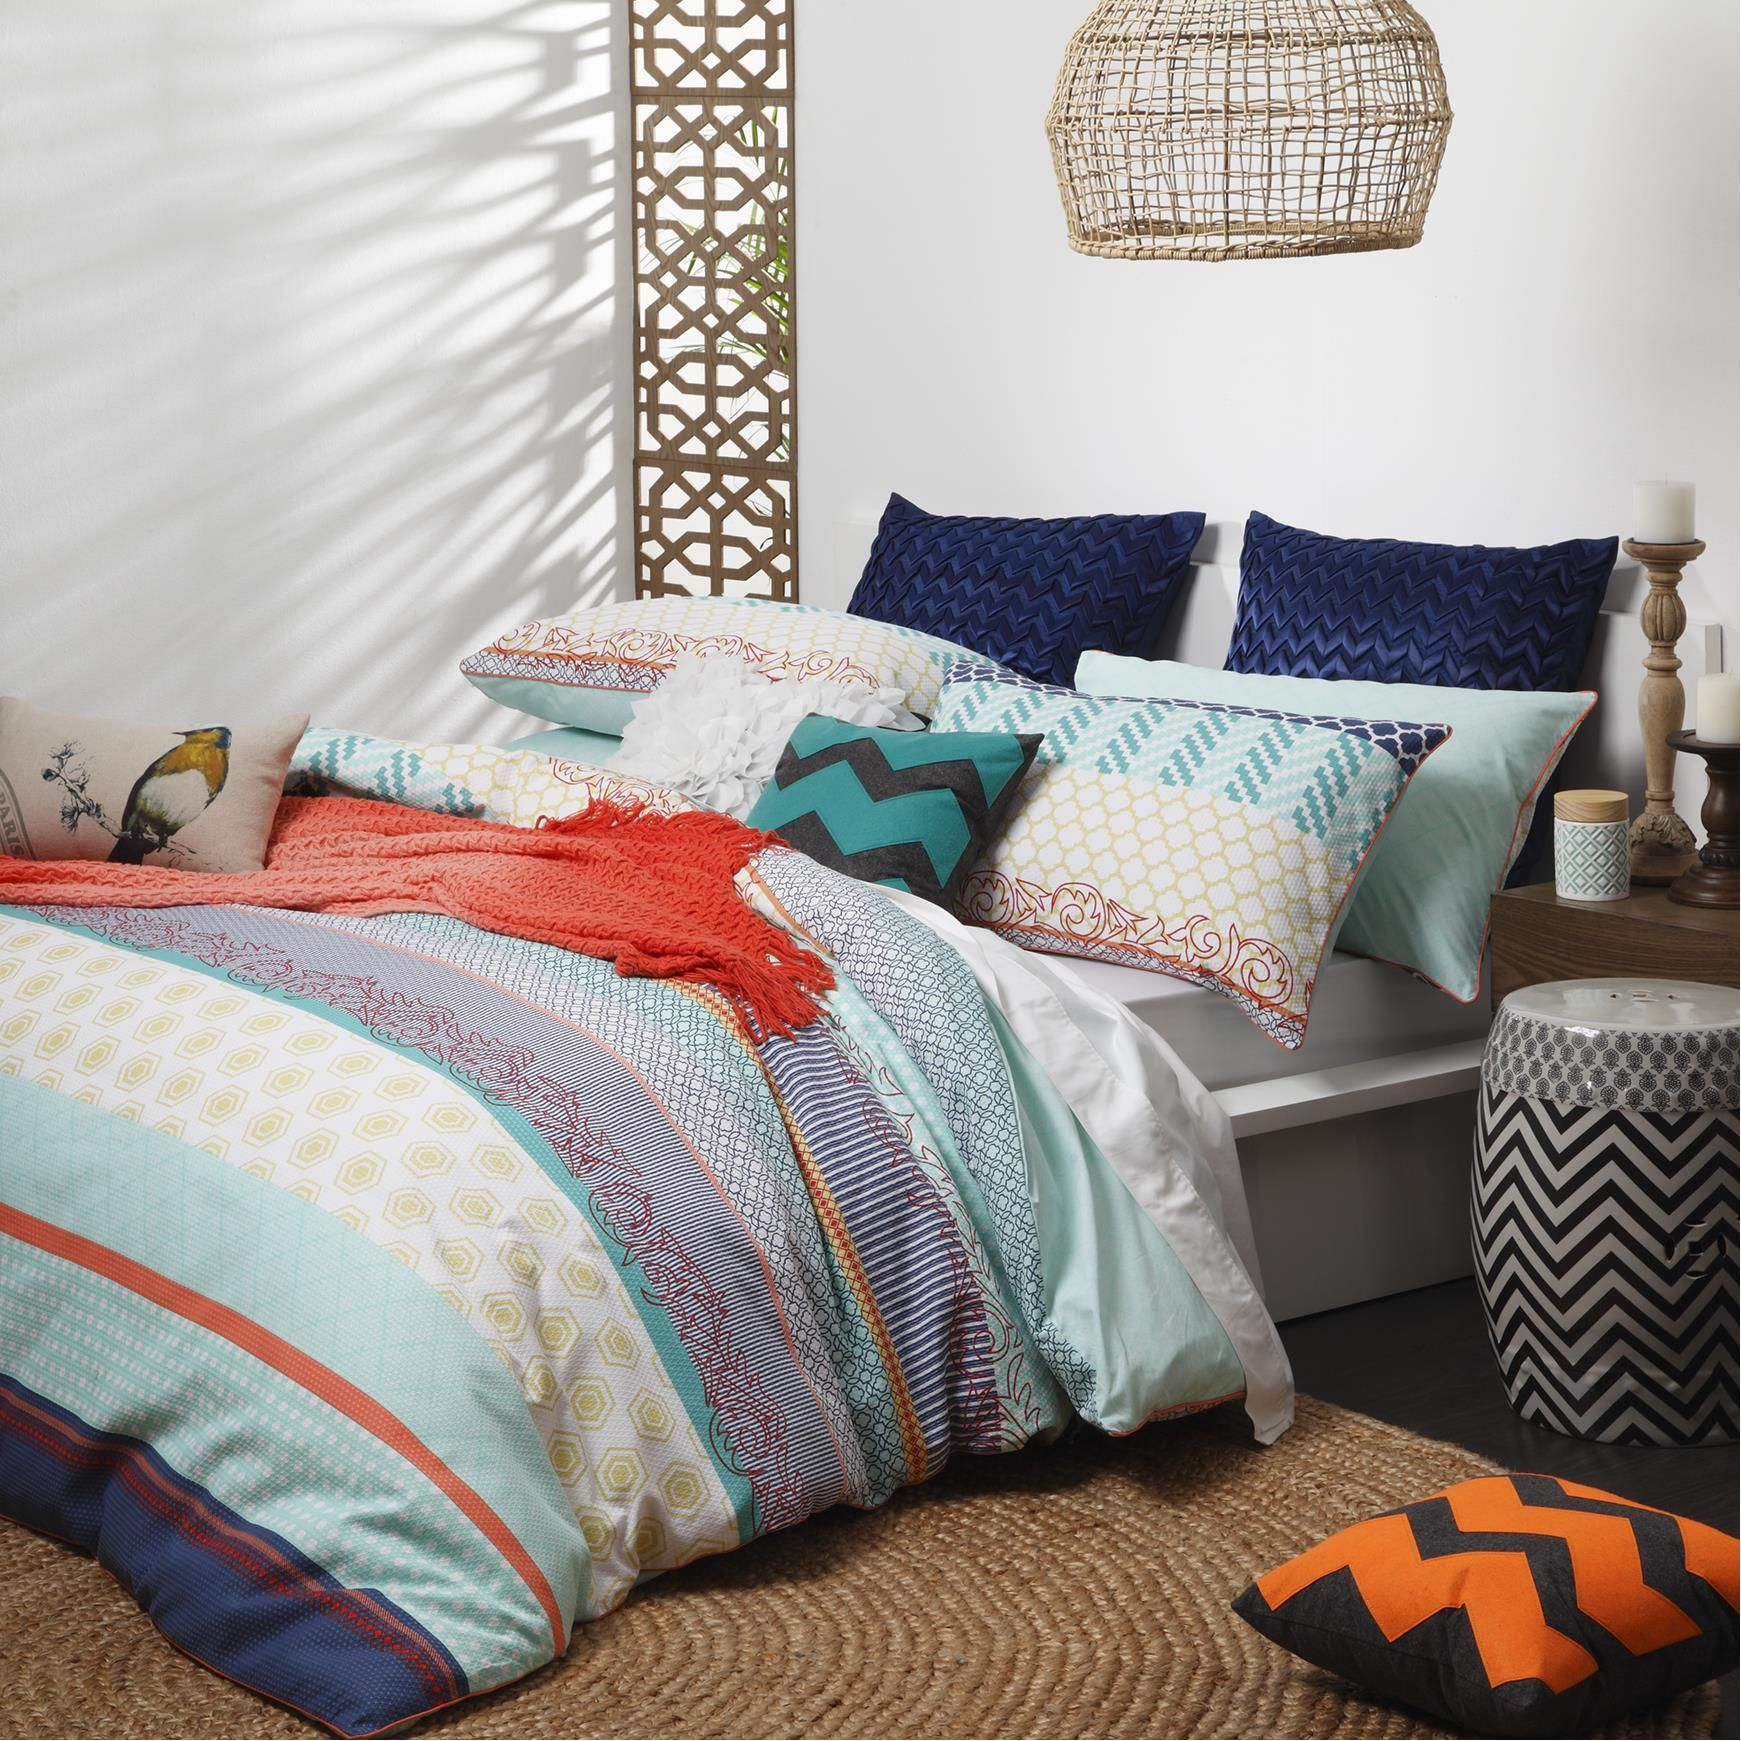 Logan and Mason Shanti Turquoise Duvet Cover Set - view full collection - duvet covers - queenb